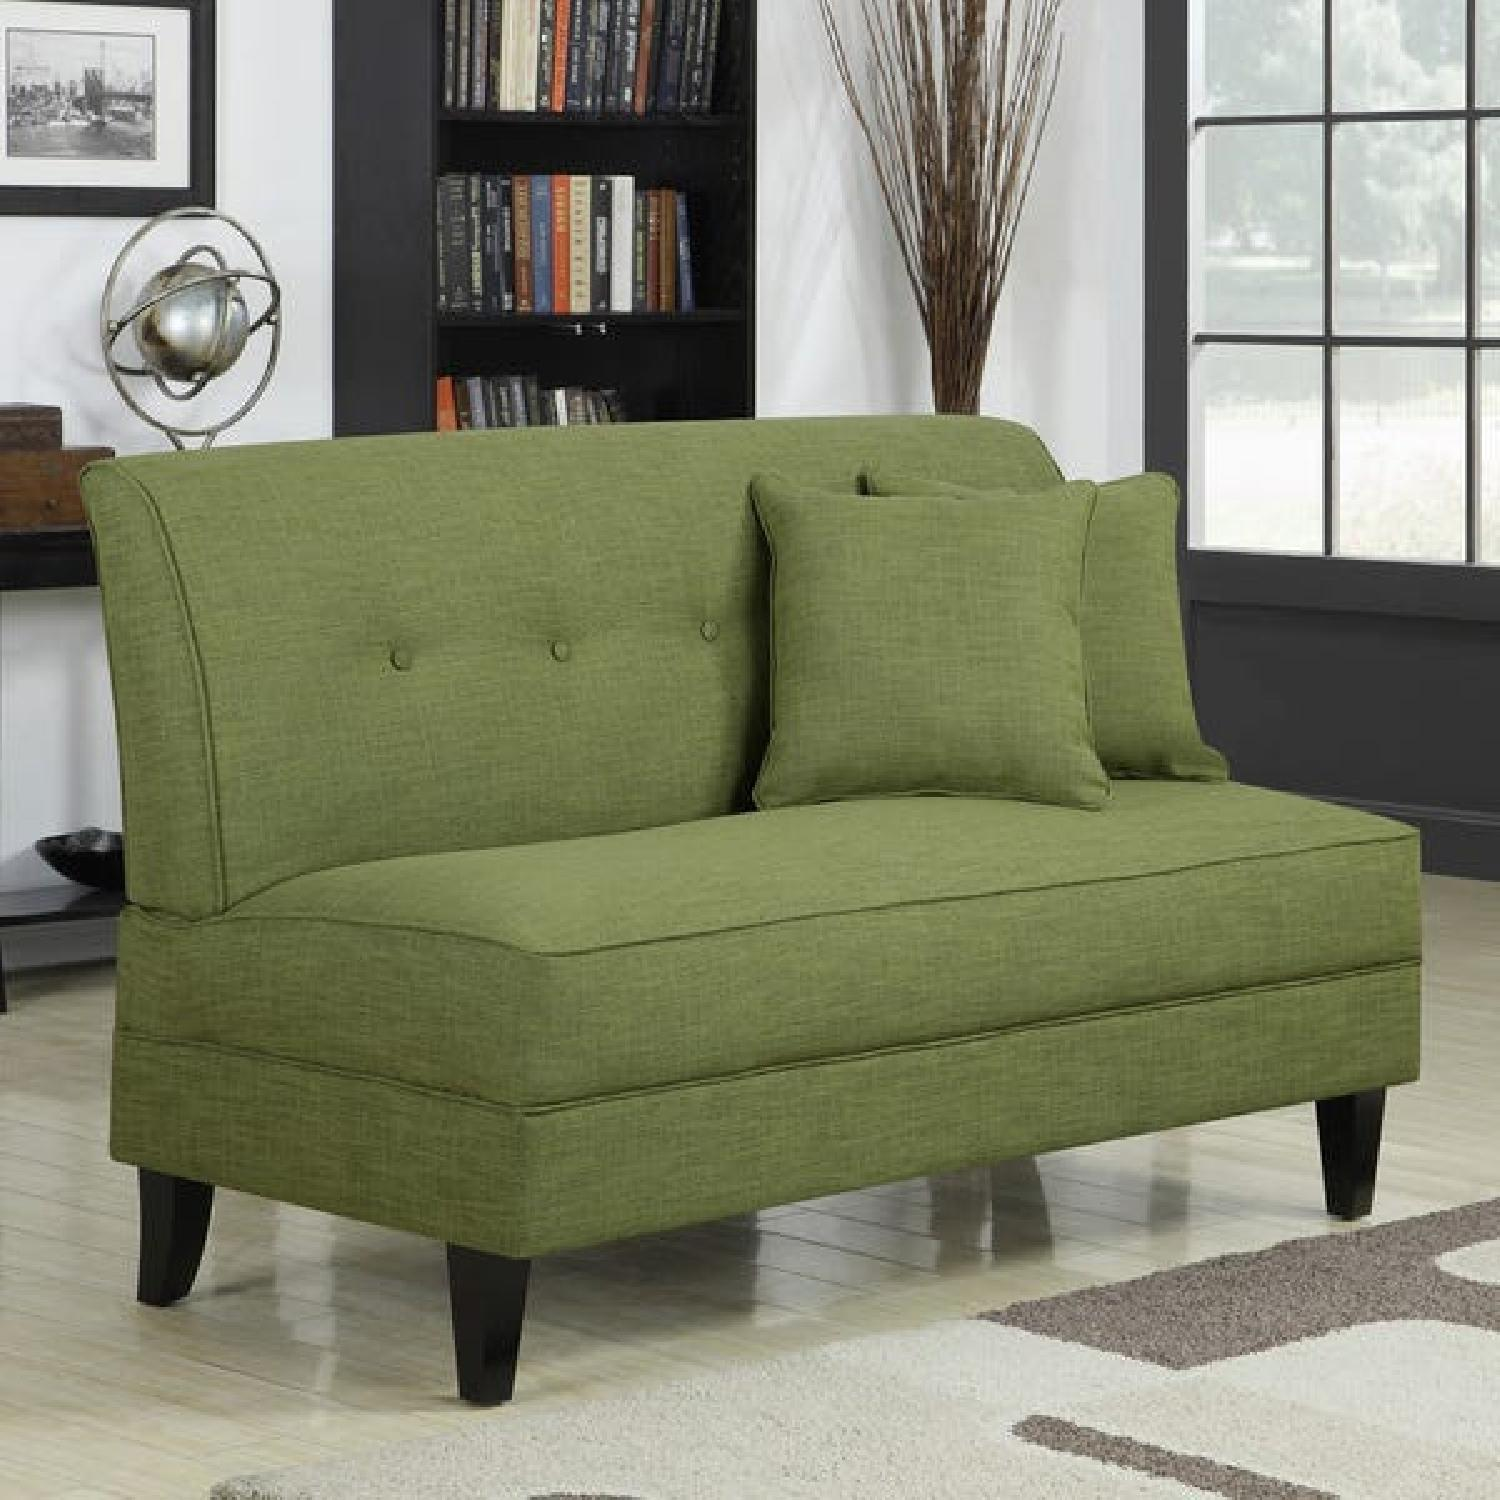 Porch & Den Pope Street Apple Green Armless Loveseat - image-4